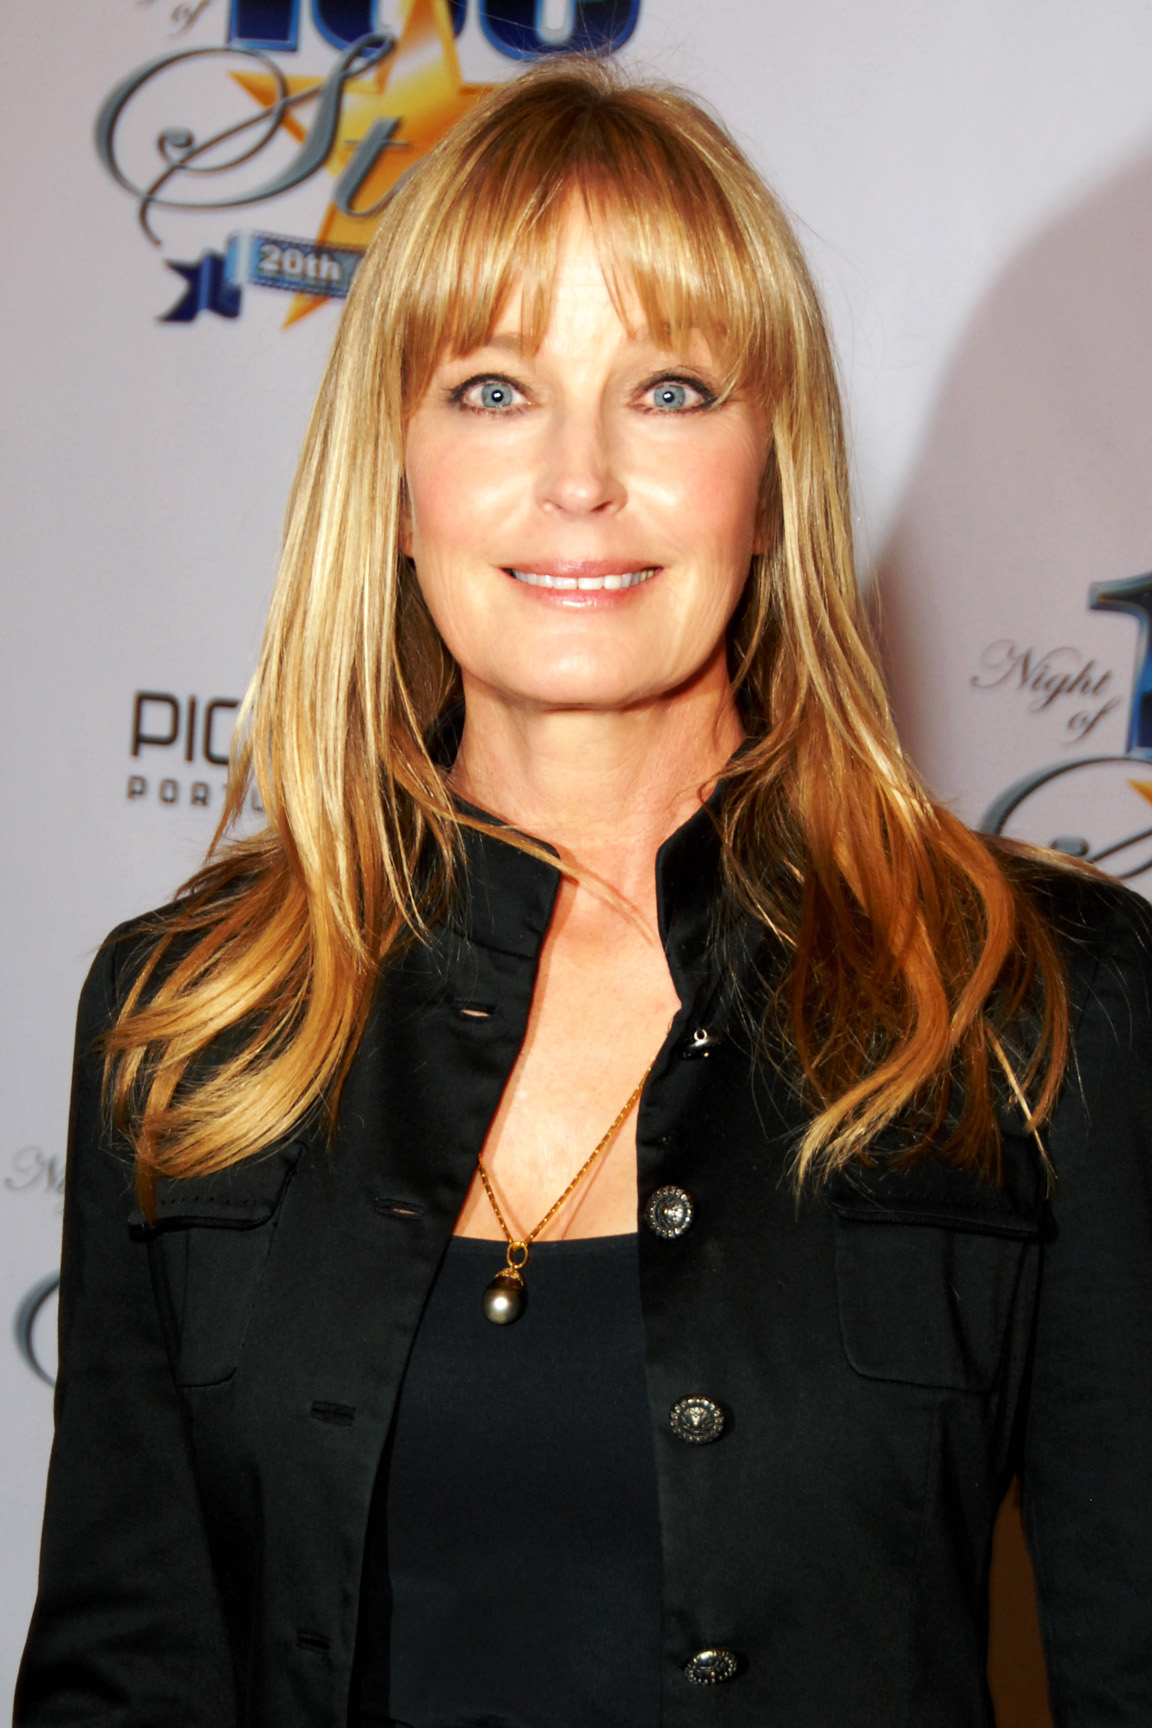 bo derek   alchetron the free social encyclopedia